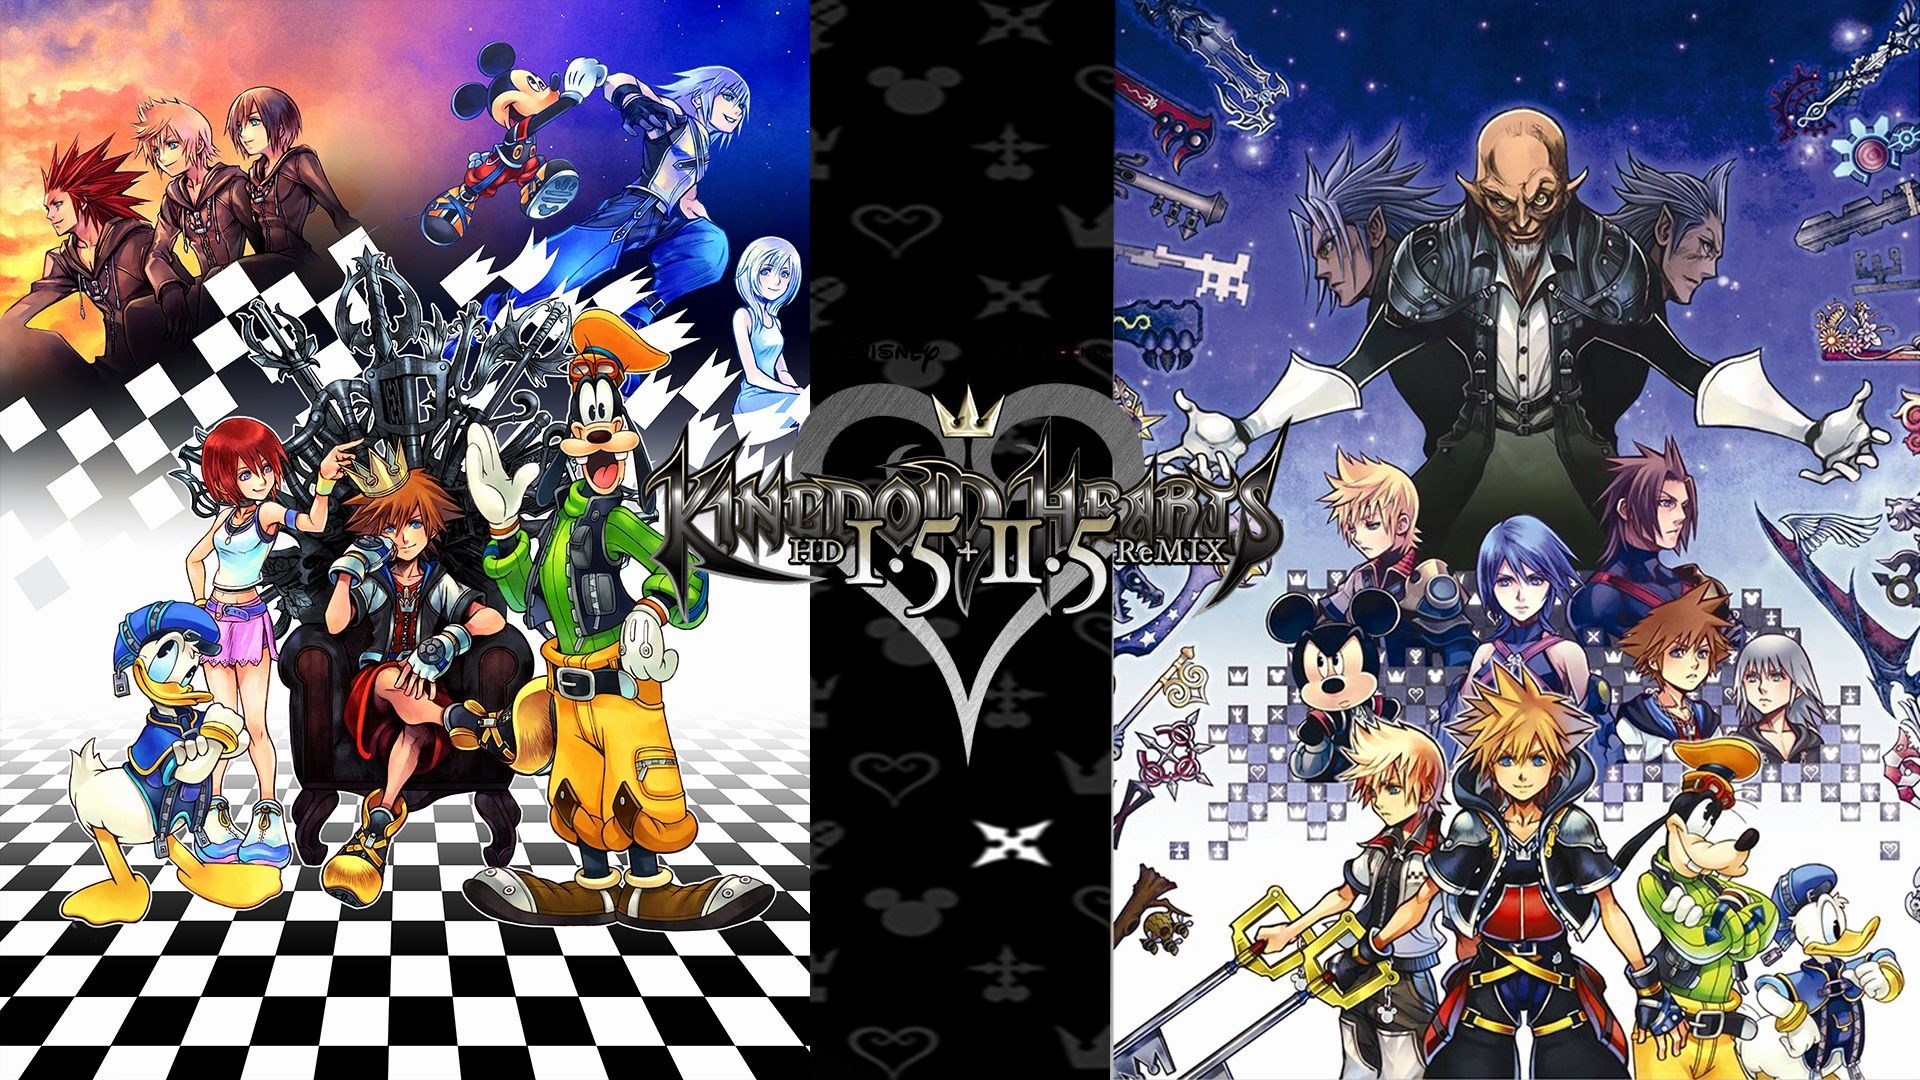 Res: 1920x1080,  Kingdom Hearts Wallpaper Best Of Kingdom Hearts 1 5 2 5 Hd Remix